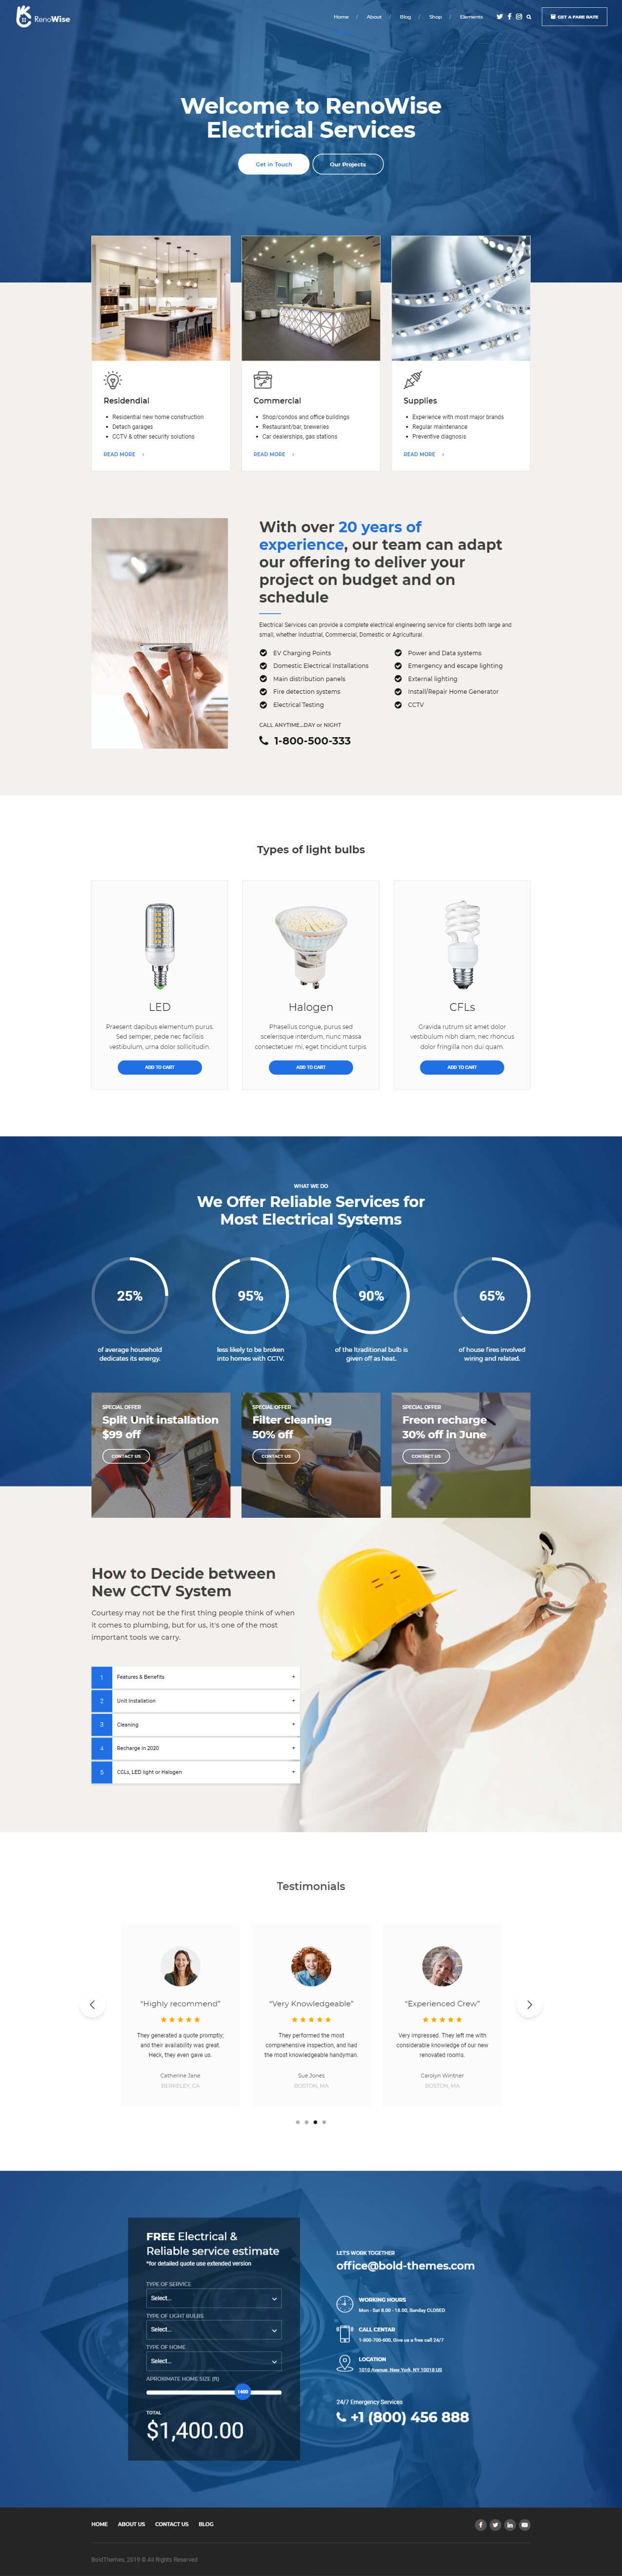 https://renowise.bold-themes.com/wp-content/uploads/2019/05/Electrician.jpg